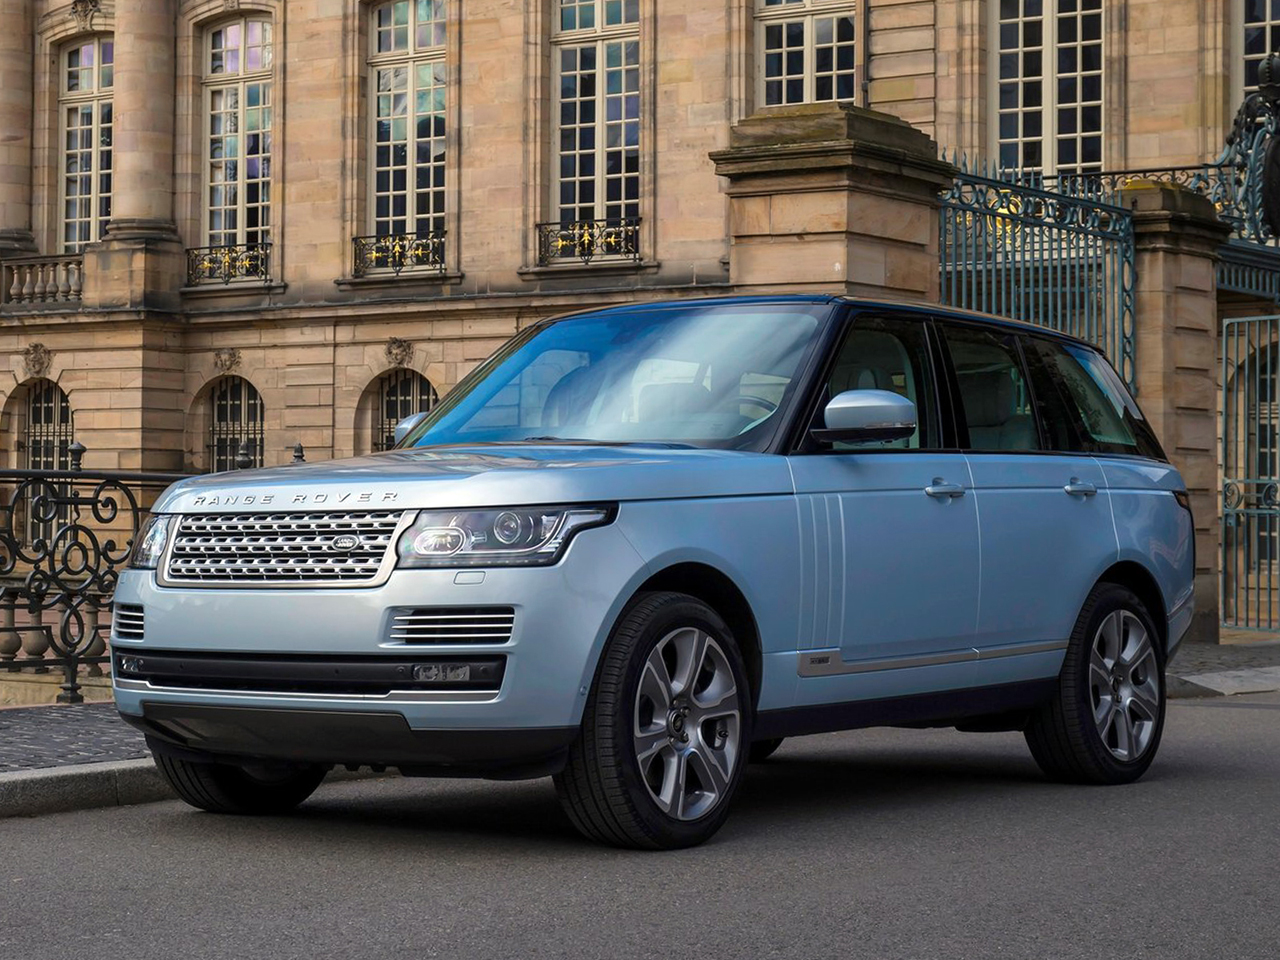 jaguar land rover just issued four safety recalls all at the same time carscoops. Black Bedroom Furniture Sets. Home Design Ideas